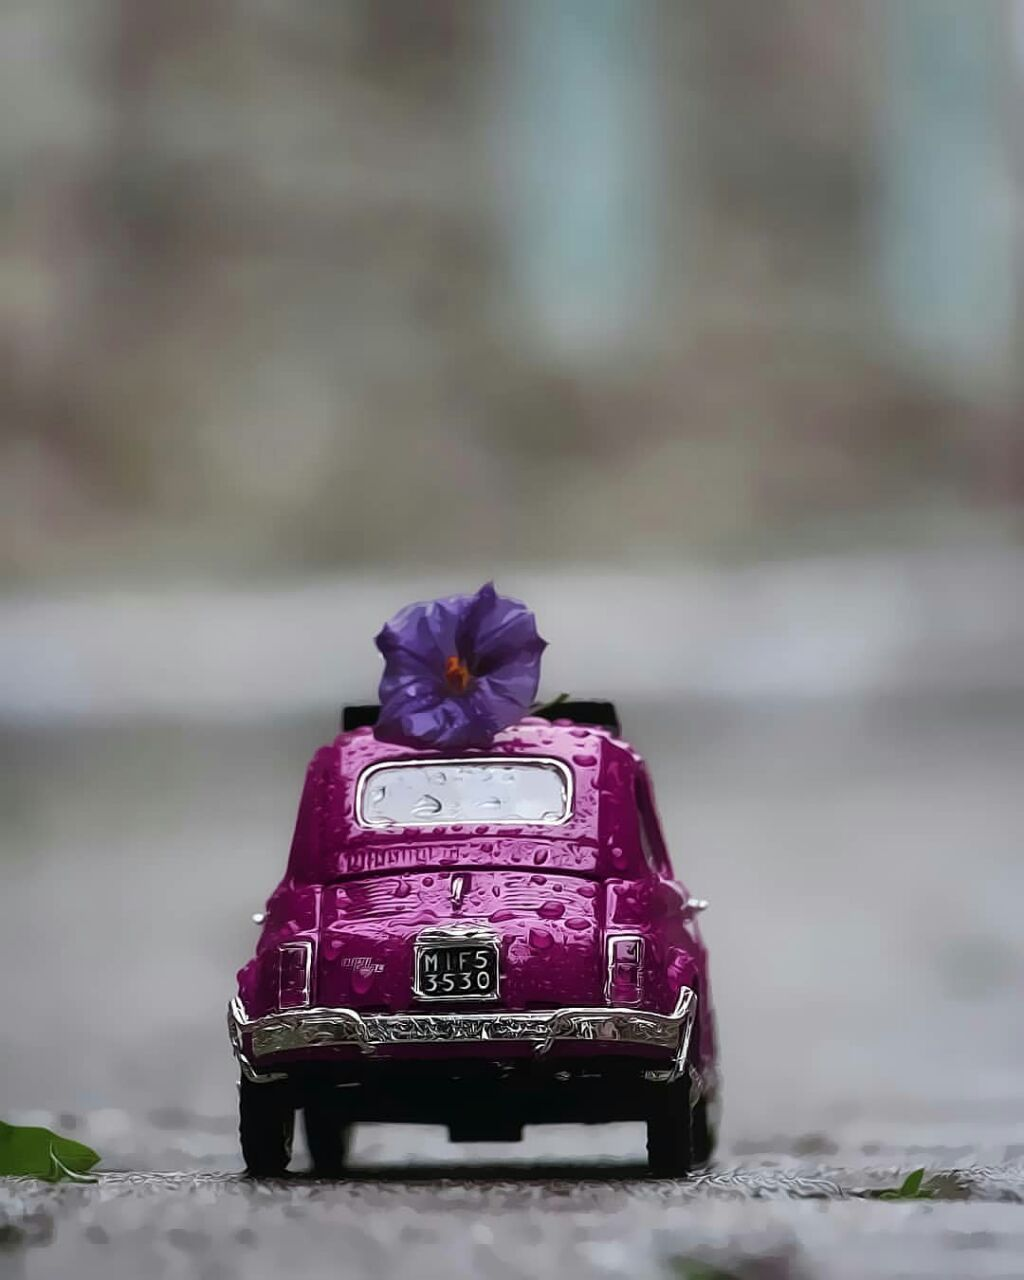 Goodby You Cute Vw Miniature Photography Cool Pictures For Wallpaper Cute Photography